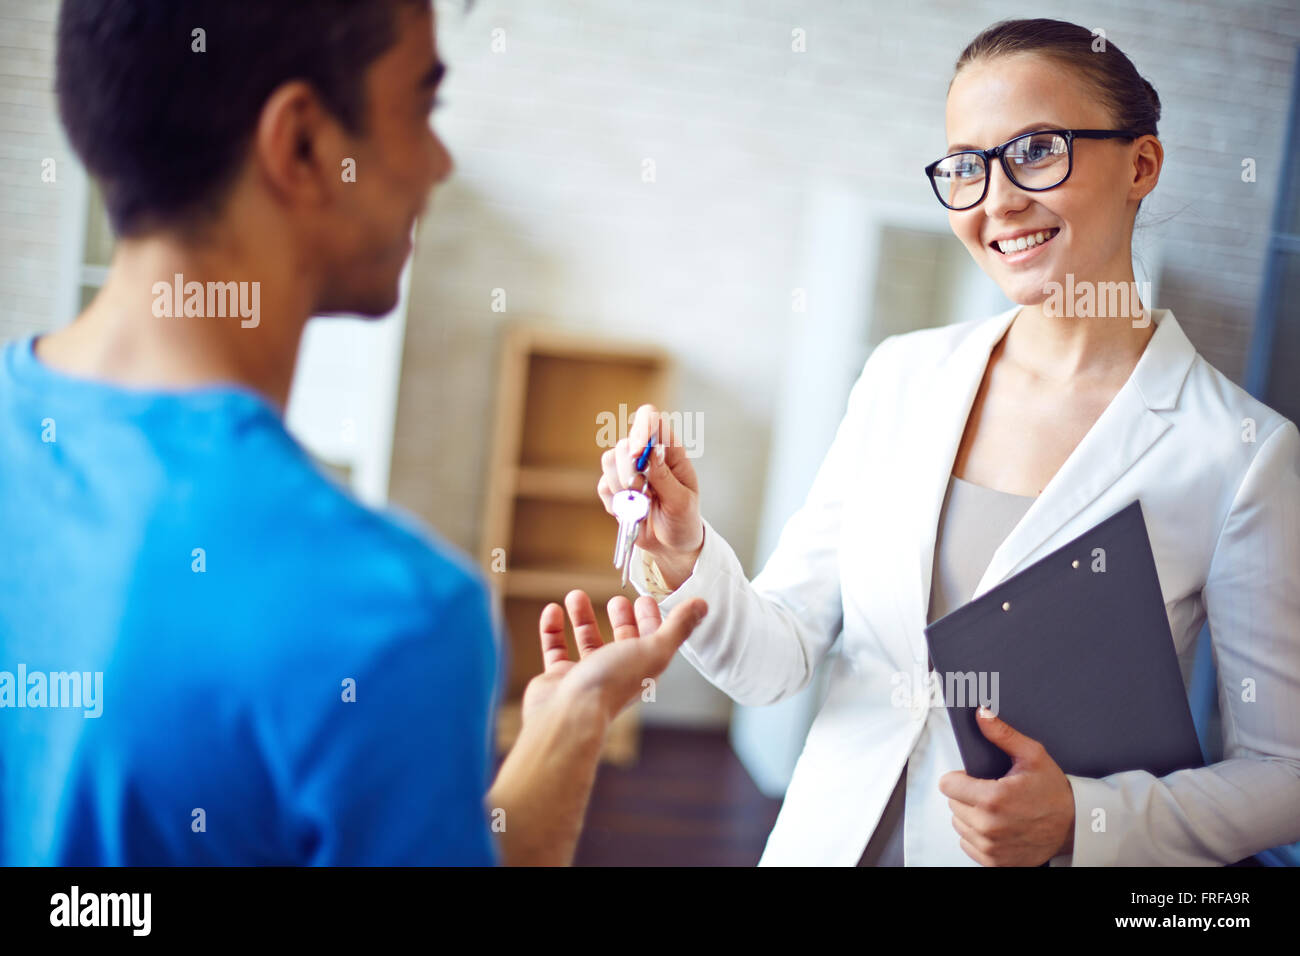 Welcome to your flat - Stock Image